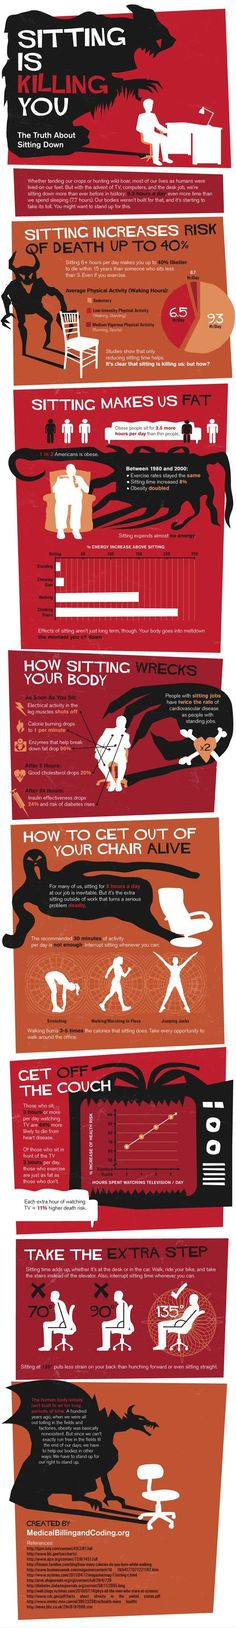 Just How Dangerous Is Sitting All Day? [INFOGRAPHIC] f you need more convincing, check out these graphically organized stats from Medical Billing and Coding. We like it for the information it contains, but we love it for the Saul Bass, Vertigo-esque graphics.